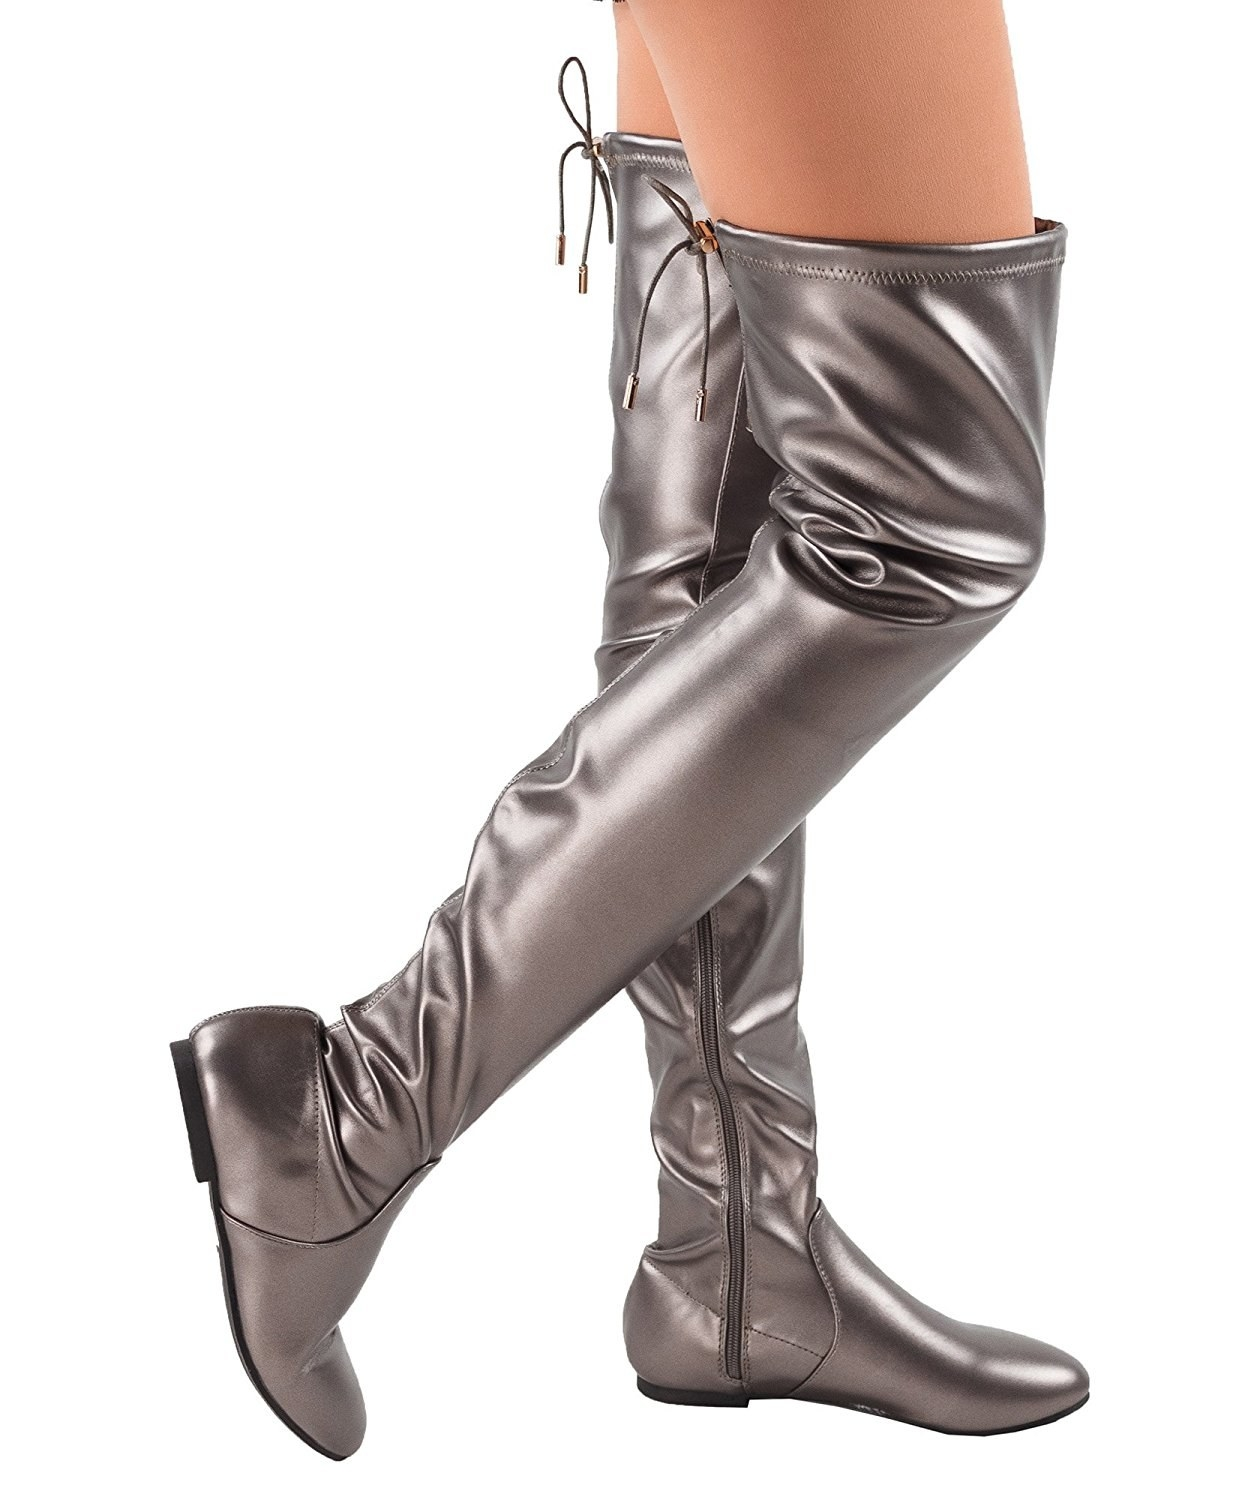 28 Gorgeous Pairs Of Thigh-High Boots